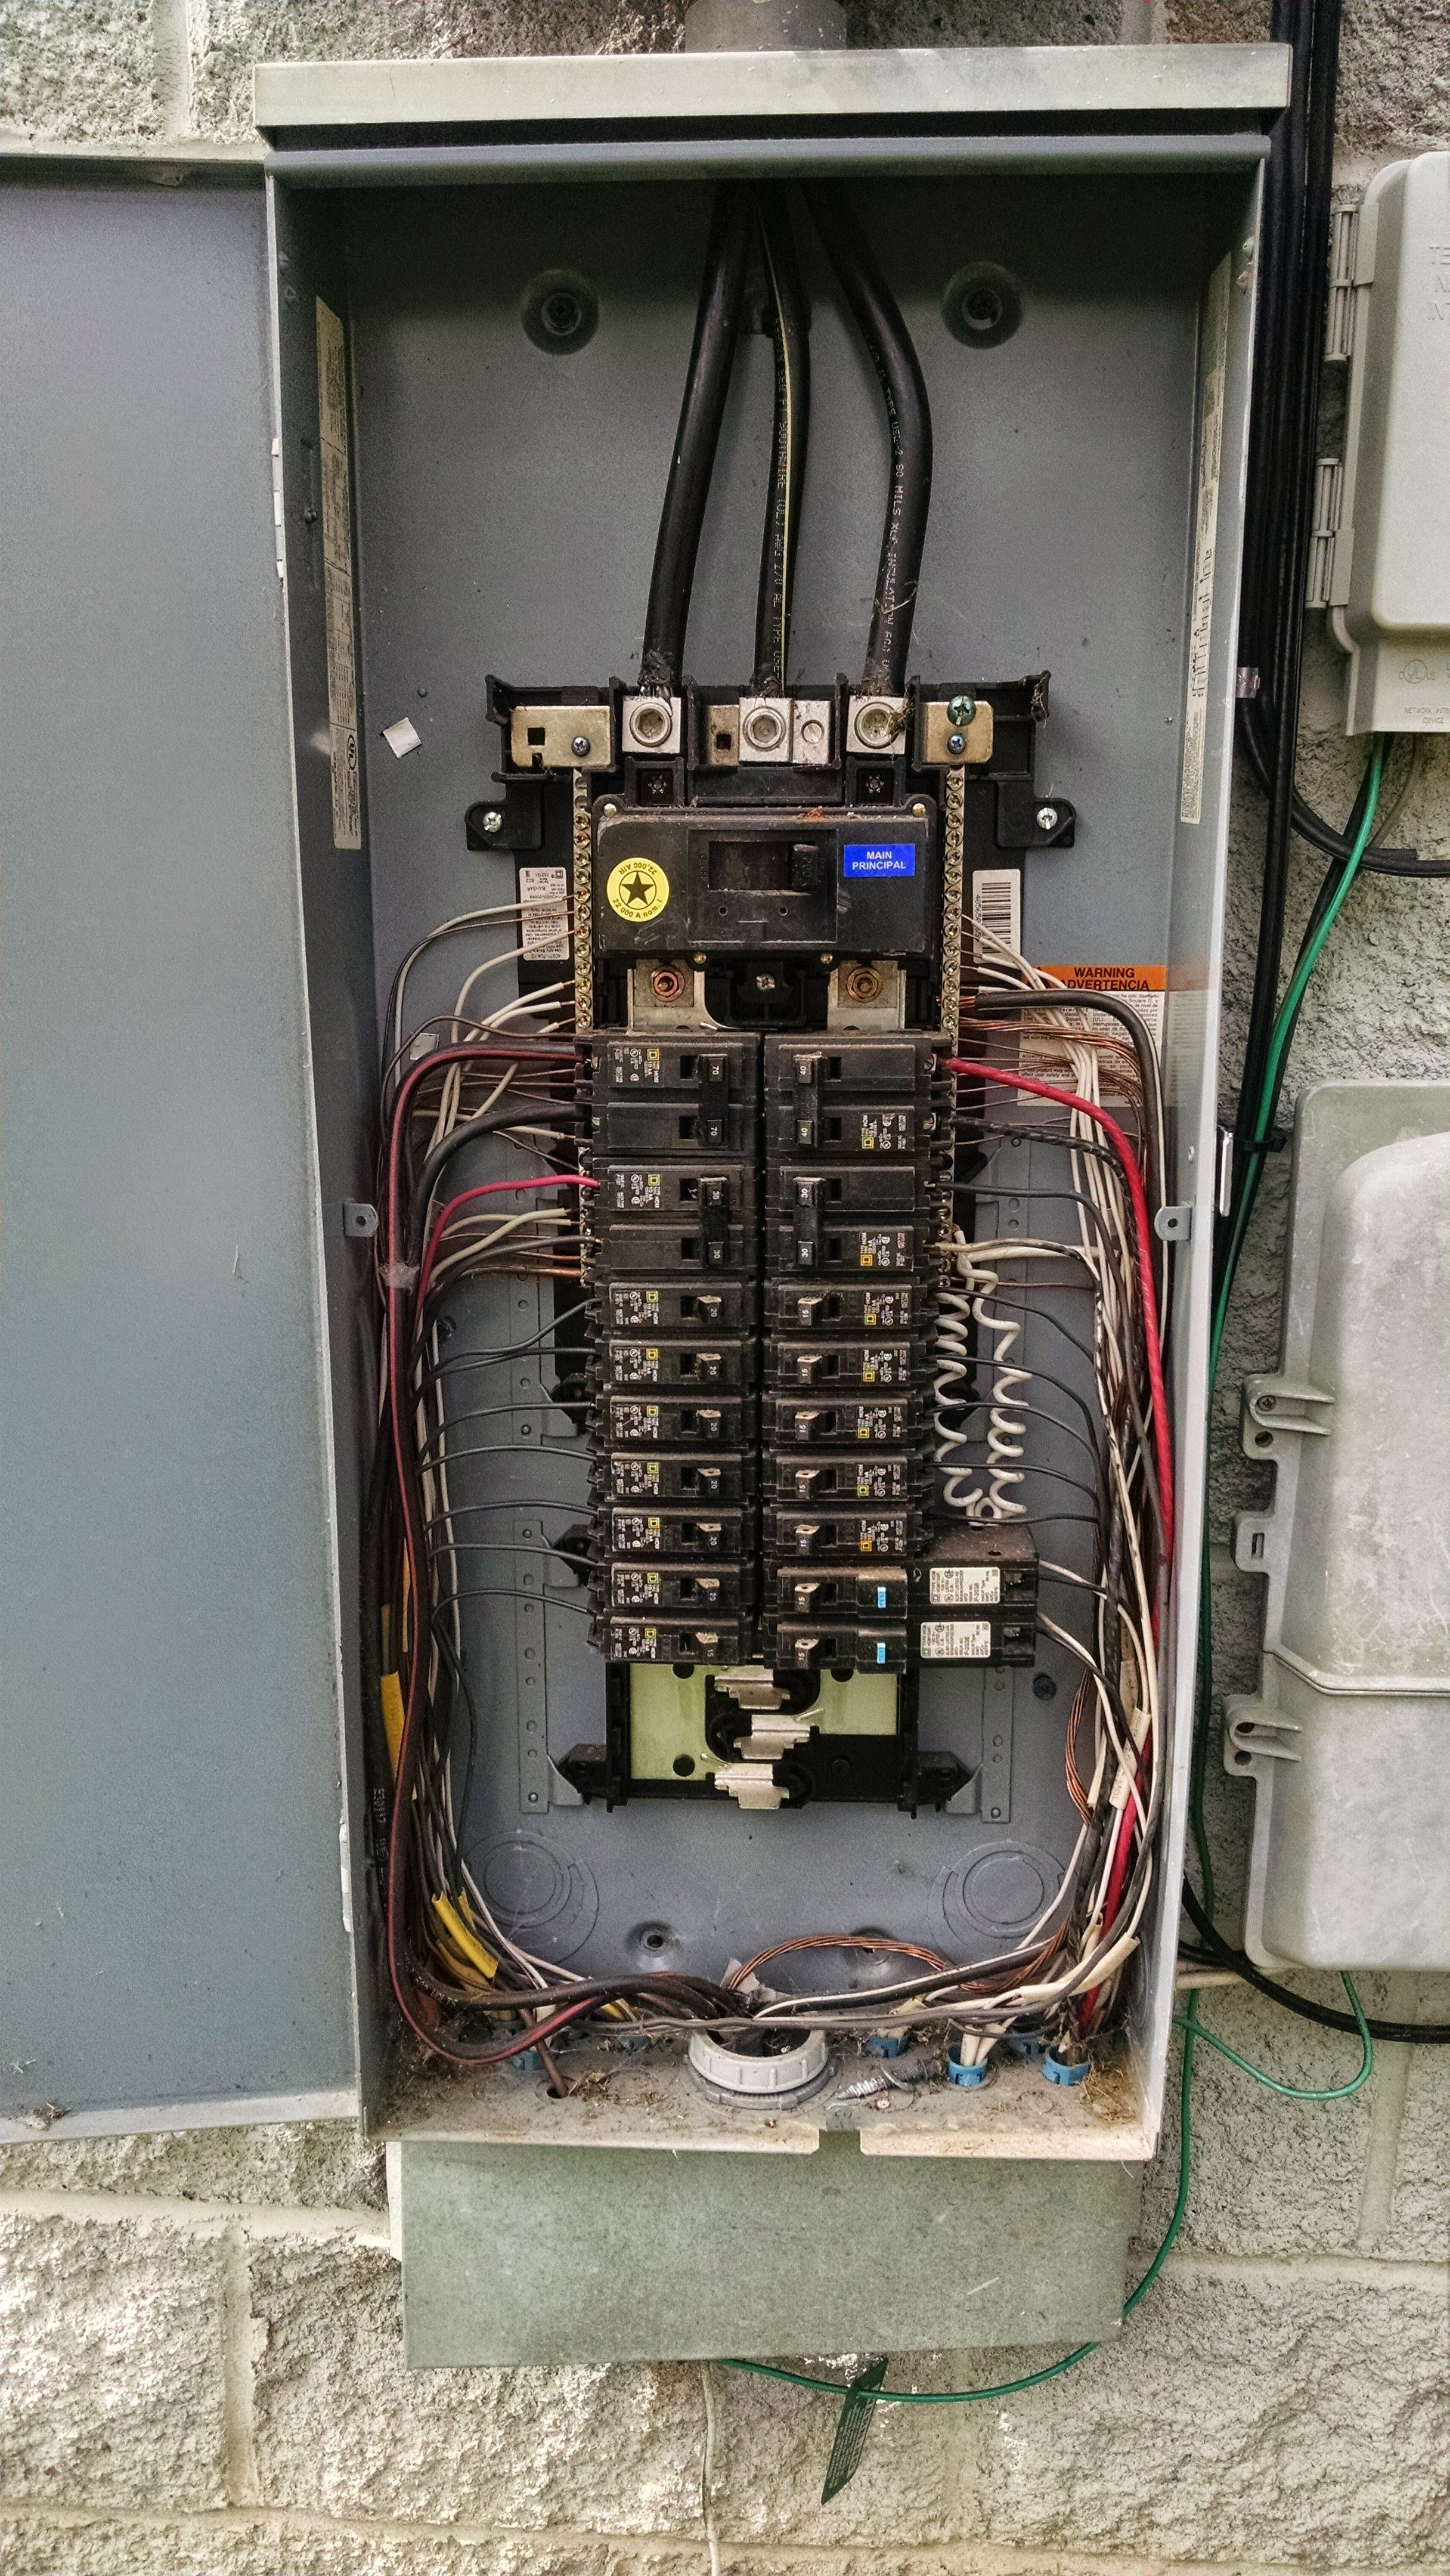 medium resolution of we at slagle electric service in knoxville tn changed out upgraded wiring electrical panels homeline